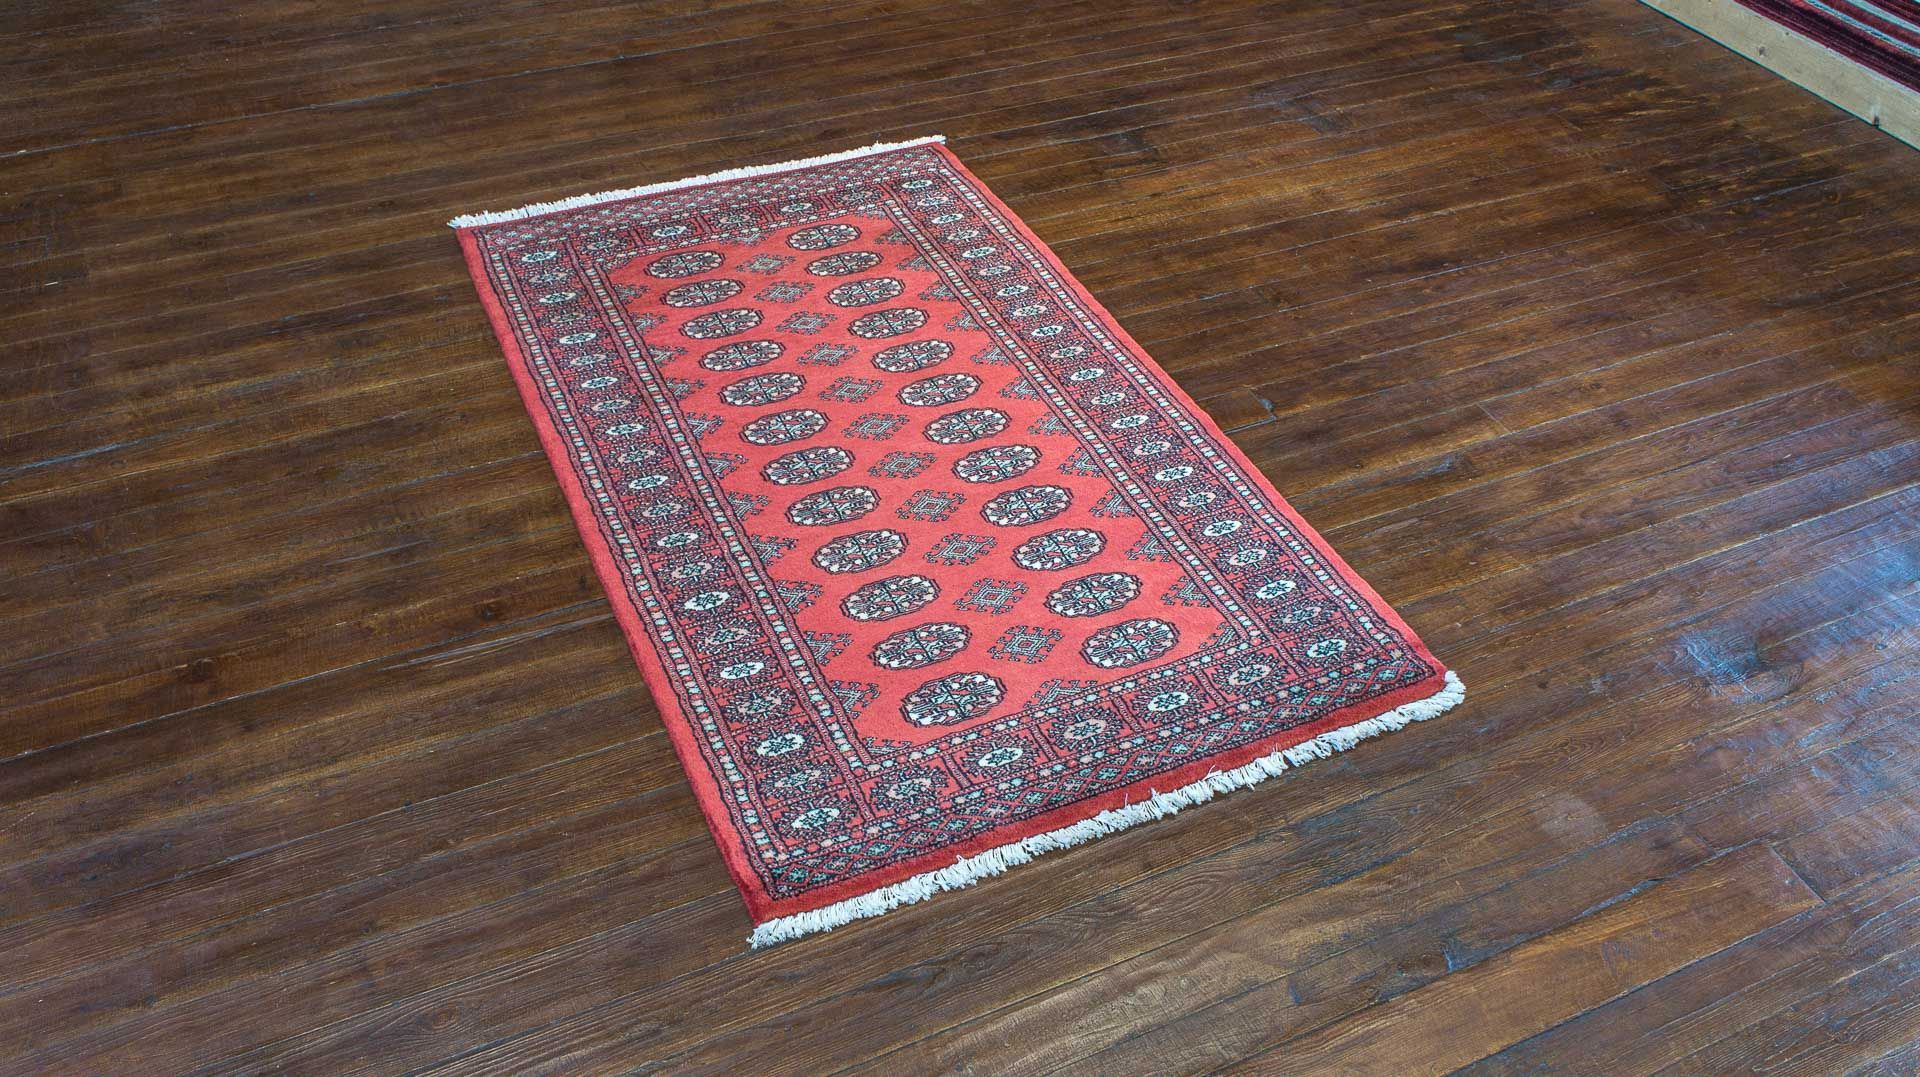 Hand Knotted Bokhara Rug From Pakistan Length 160 0cm By Width